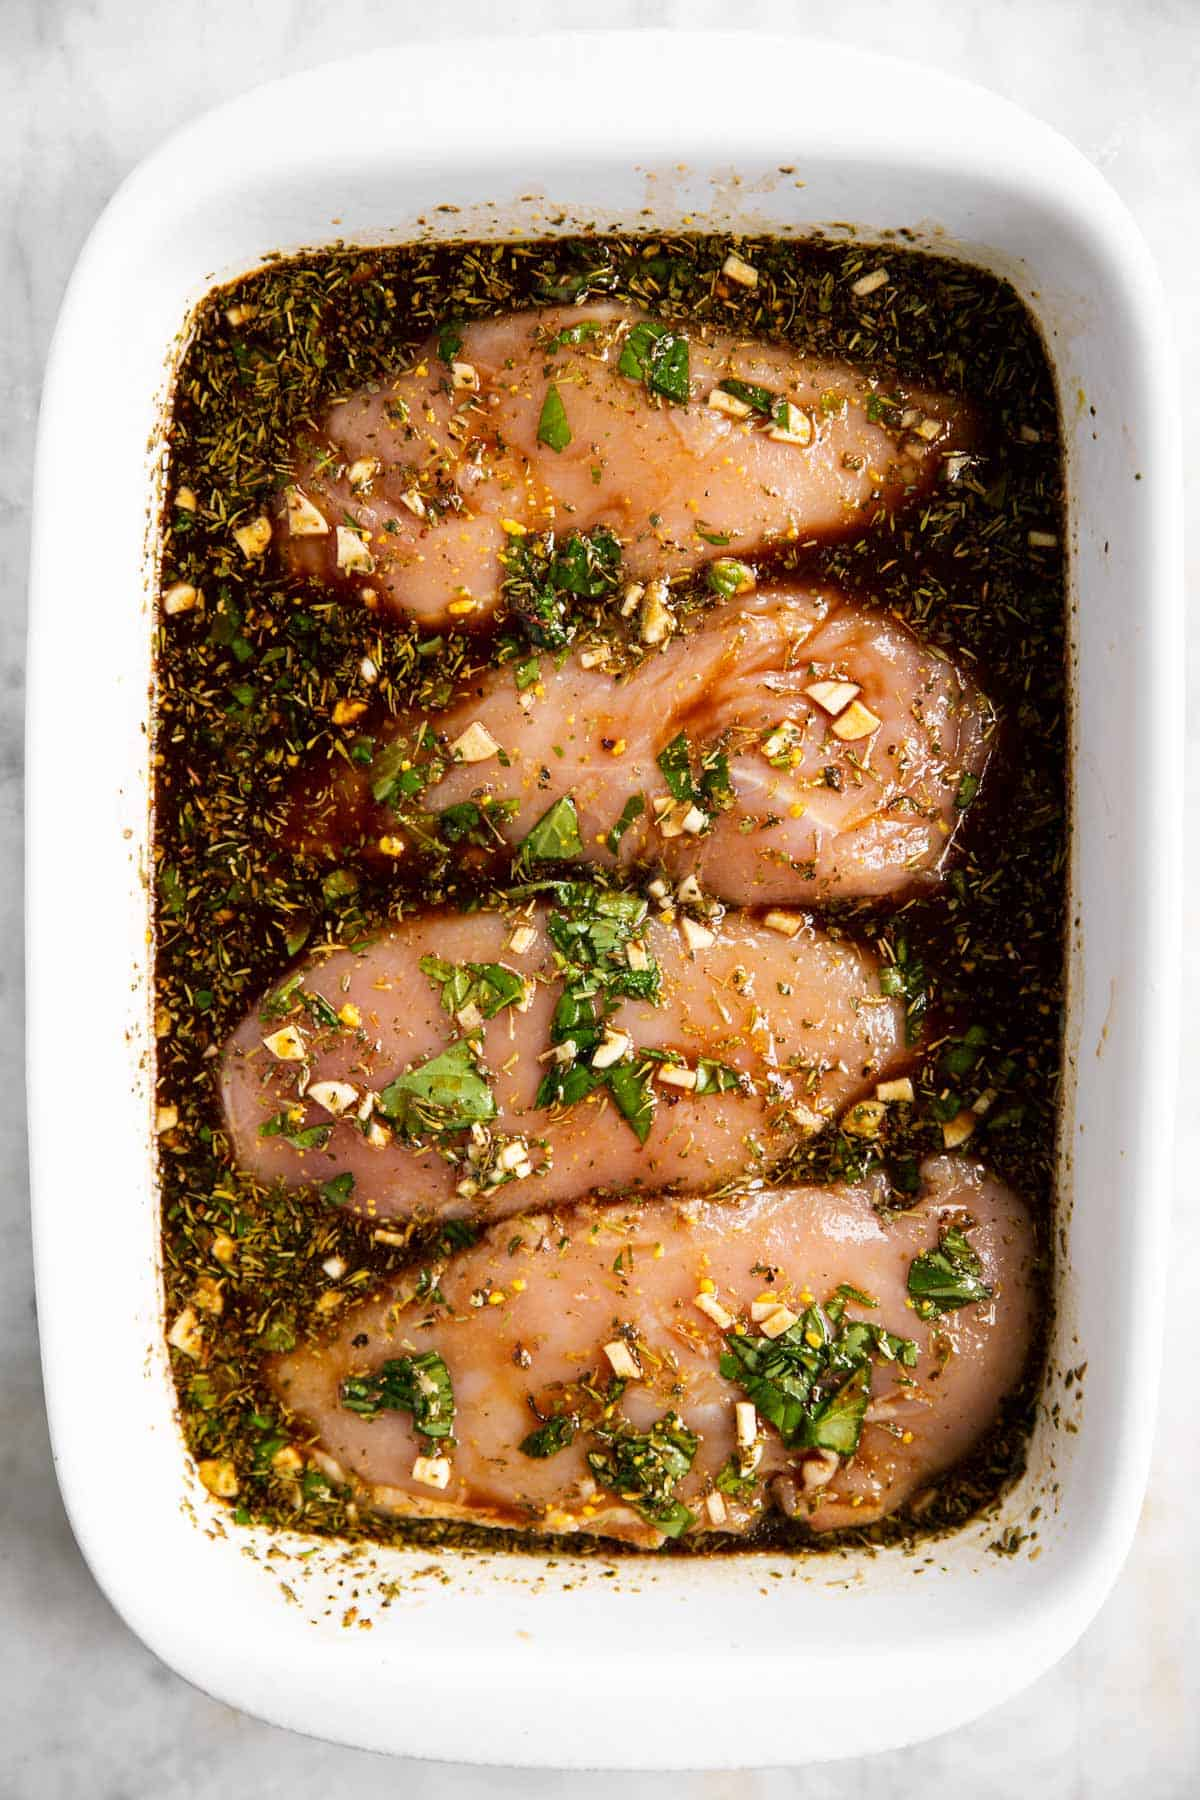 four raw chicken breasts in white casserole dish with balsamic marinade